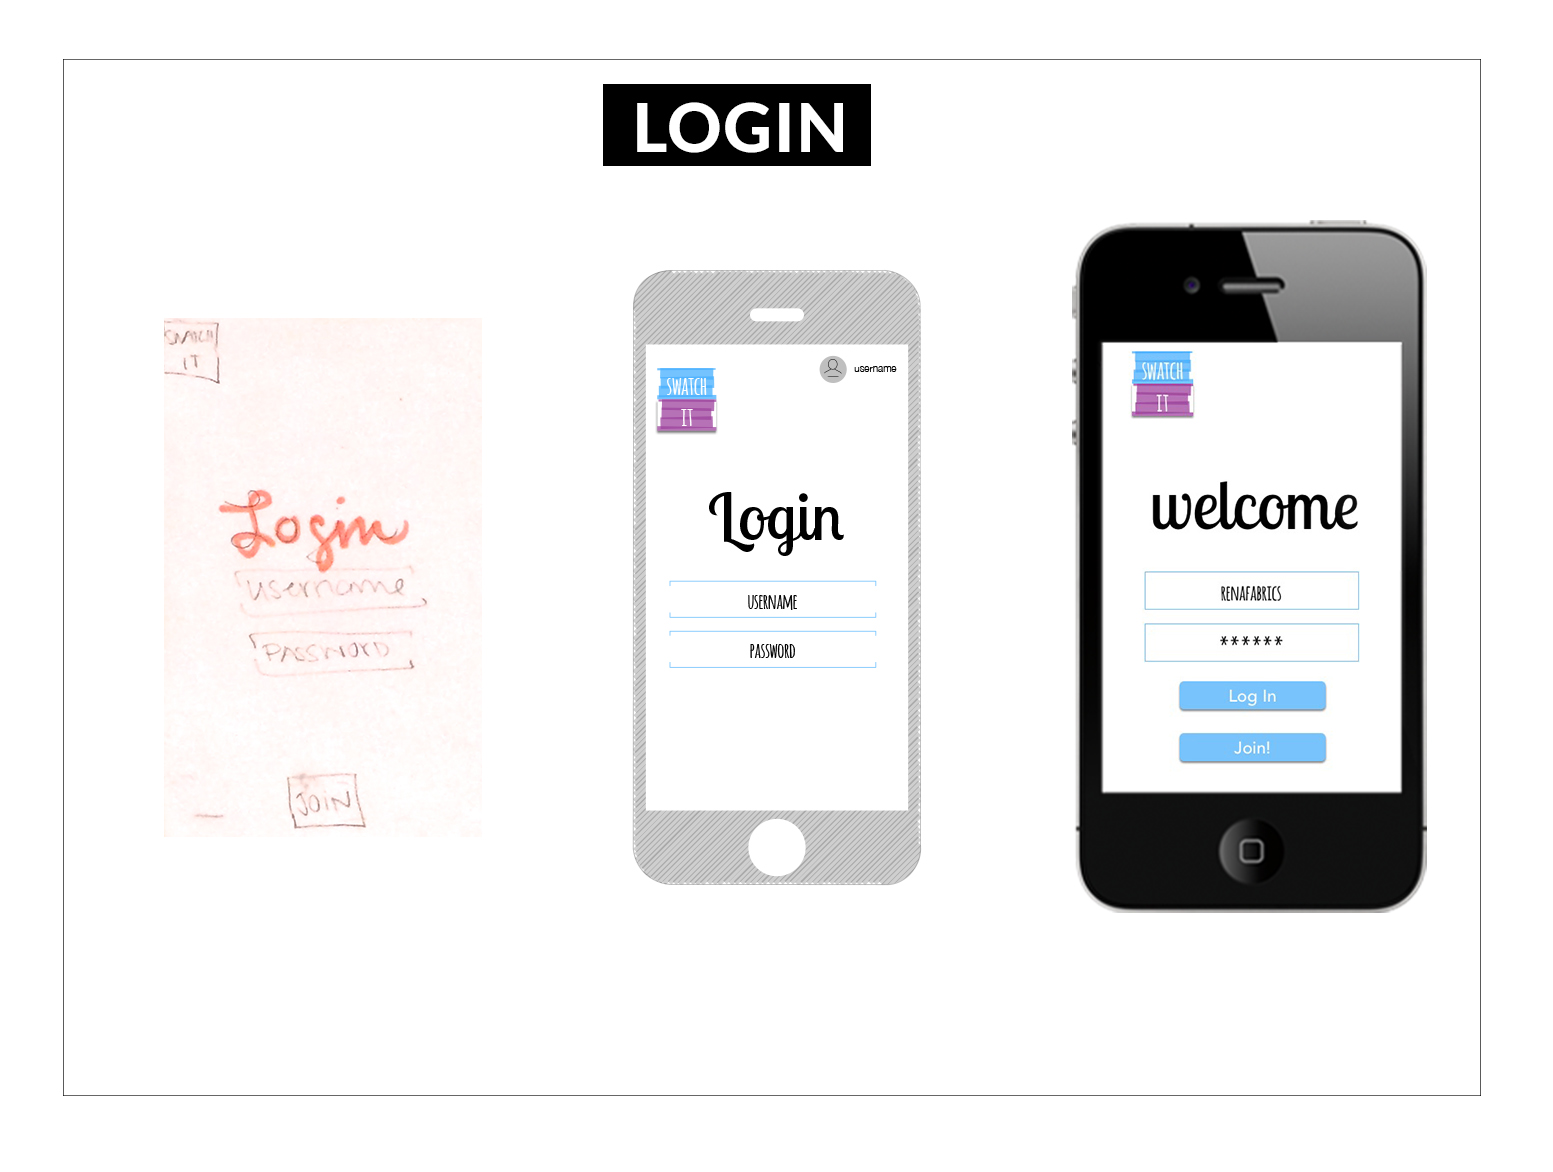 """After testing with Rena, I added necessary """"call-to-action"""" buttons for logging in. I also wanted to more obviously differentiate the input boxes and buttons by using slightly different fonts and shapes."""